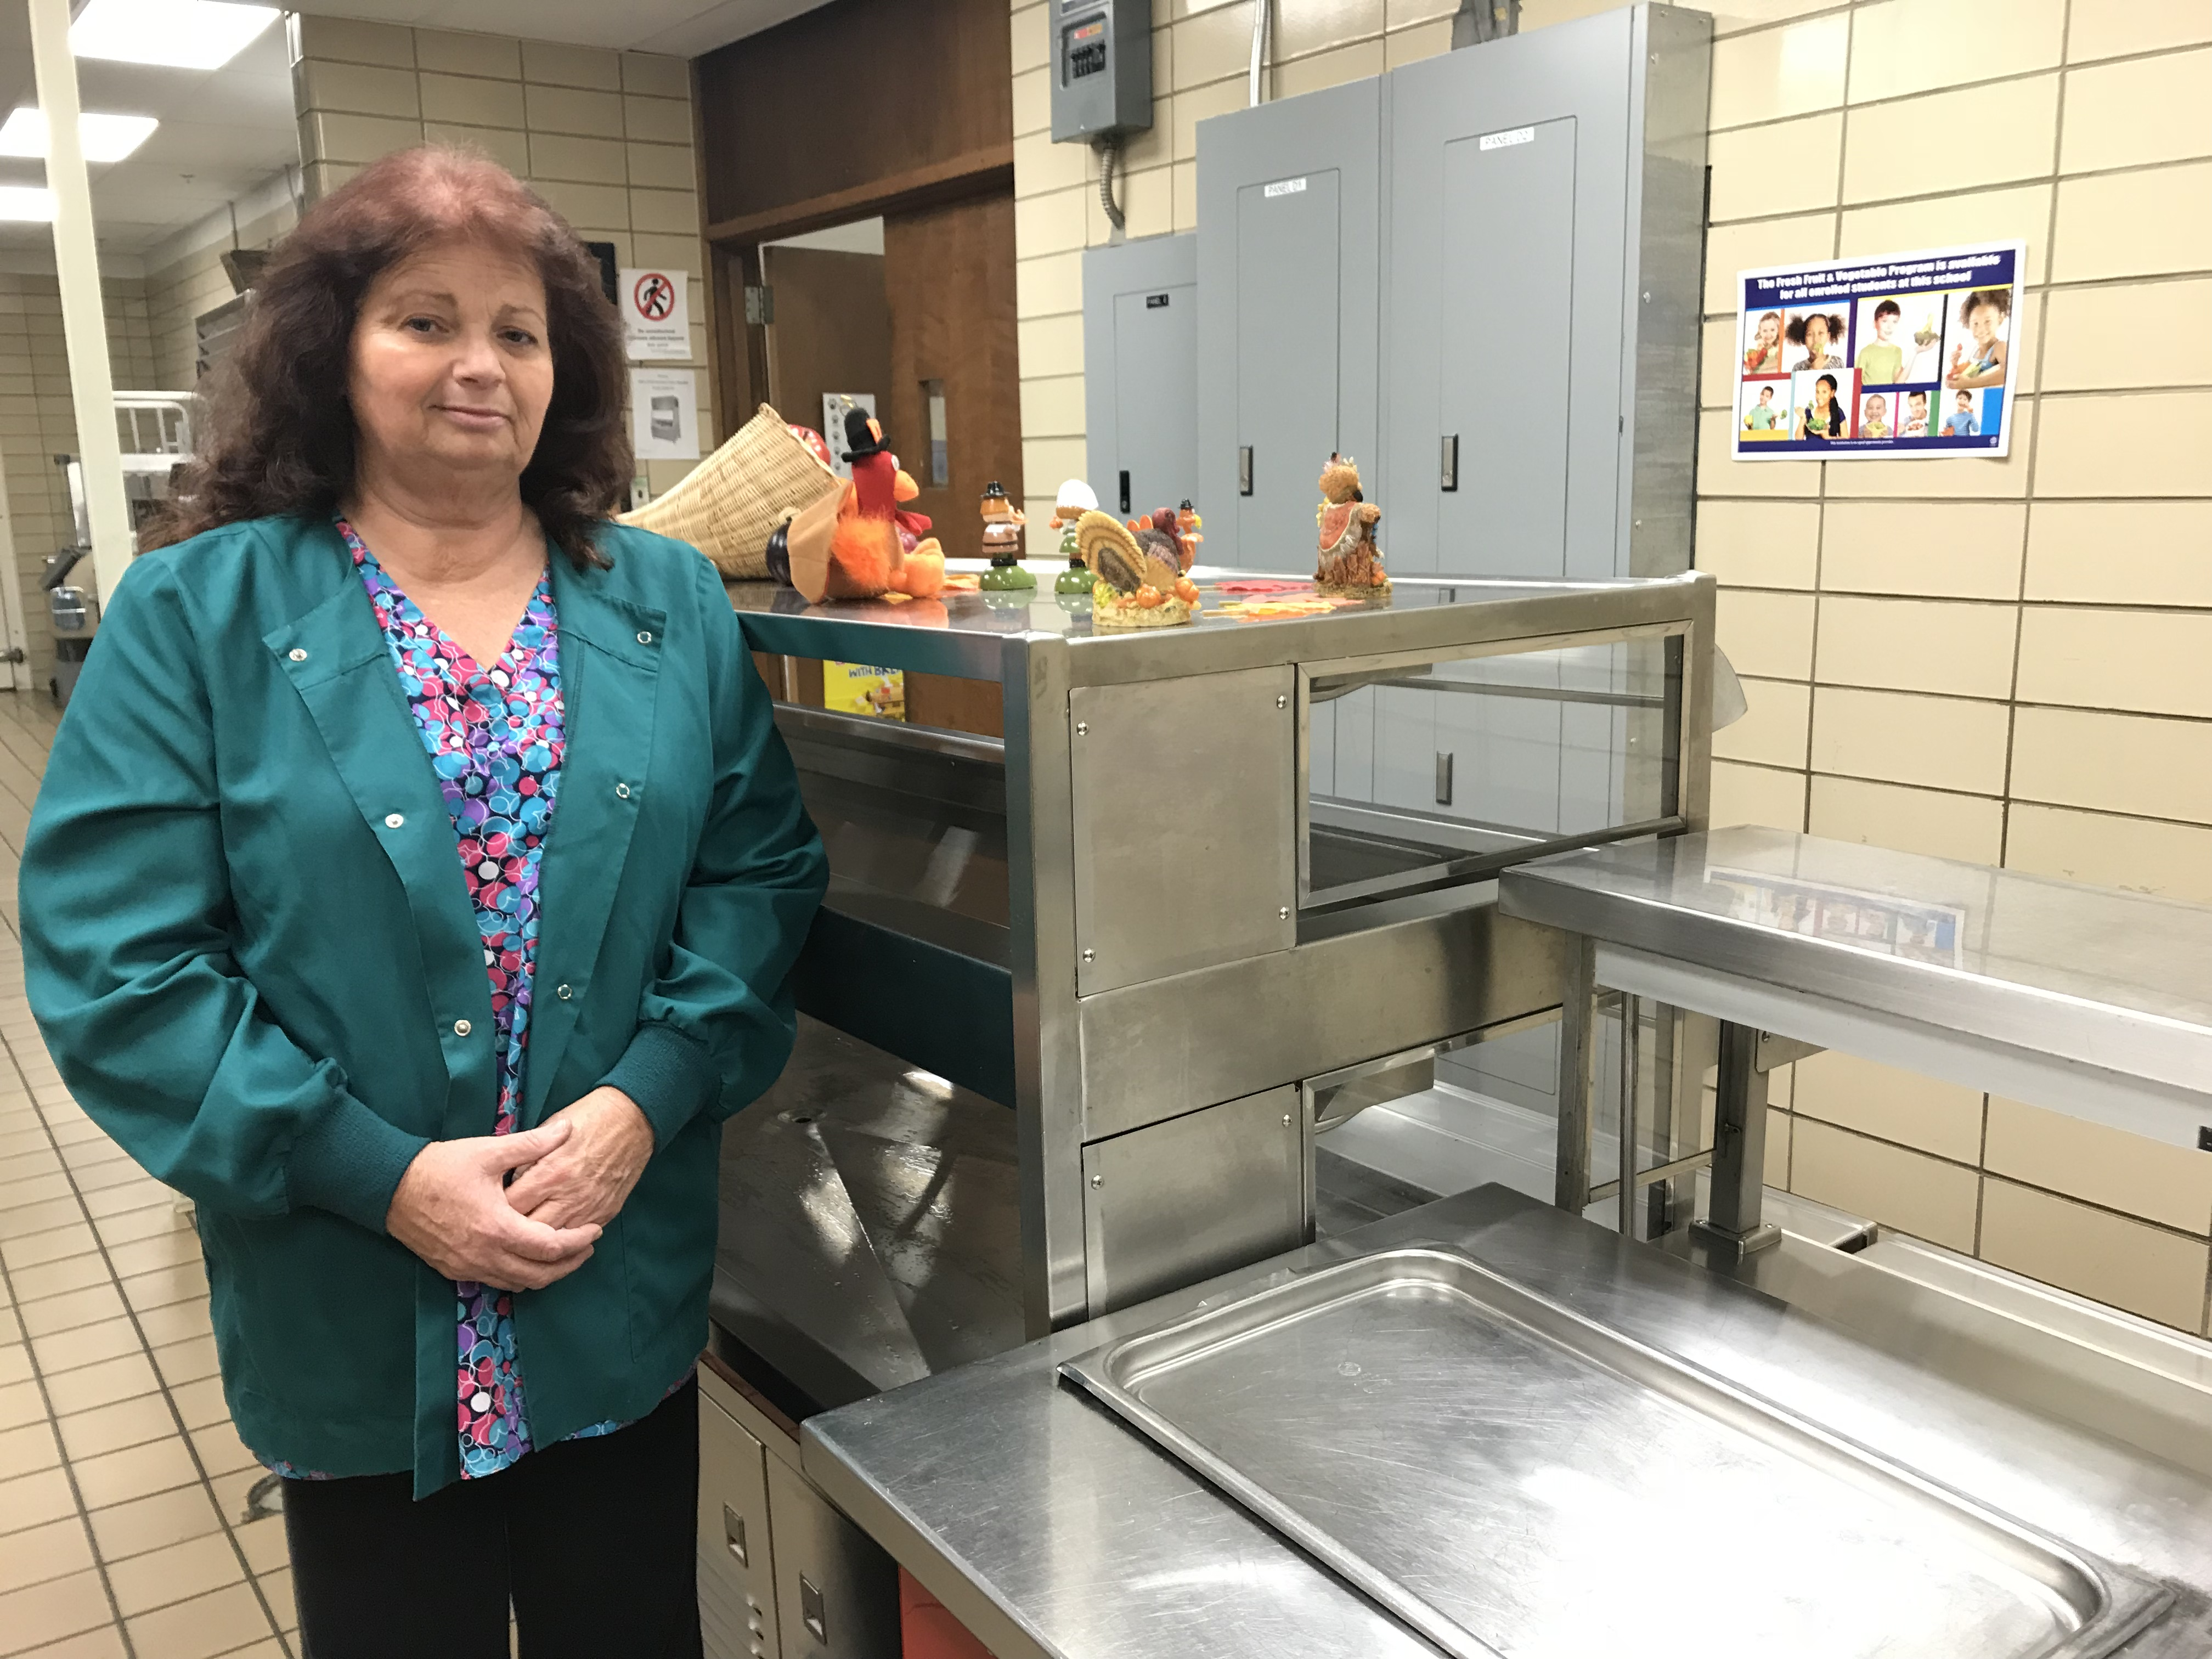 Deborah Cantonwine is the cafeteria manager at Inskip Elementary School.